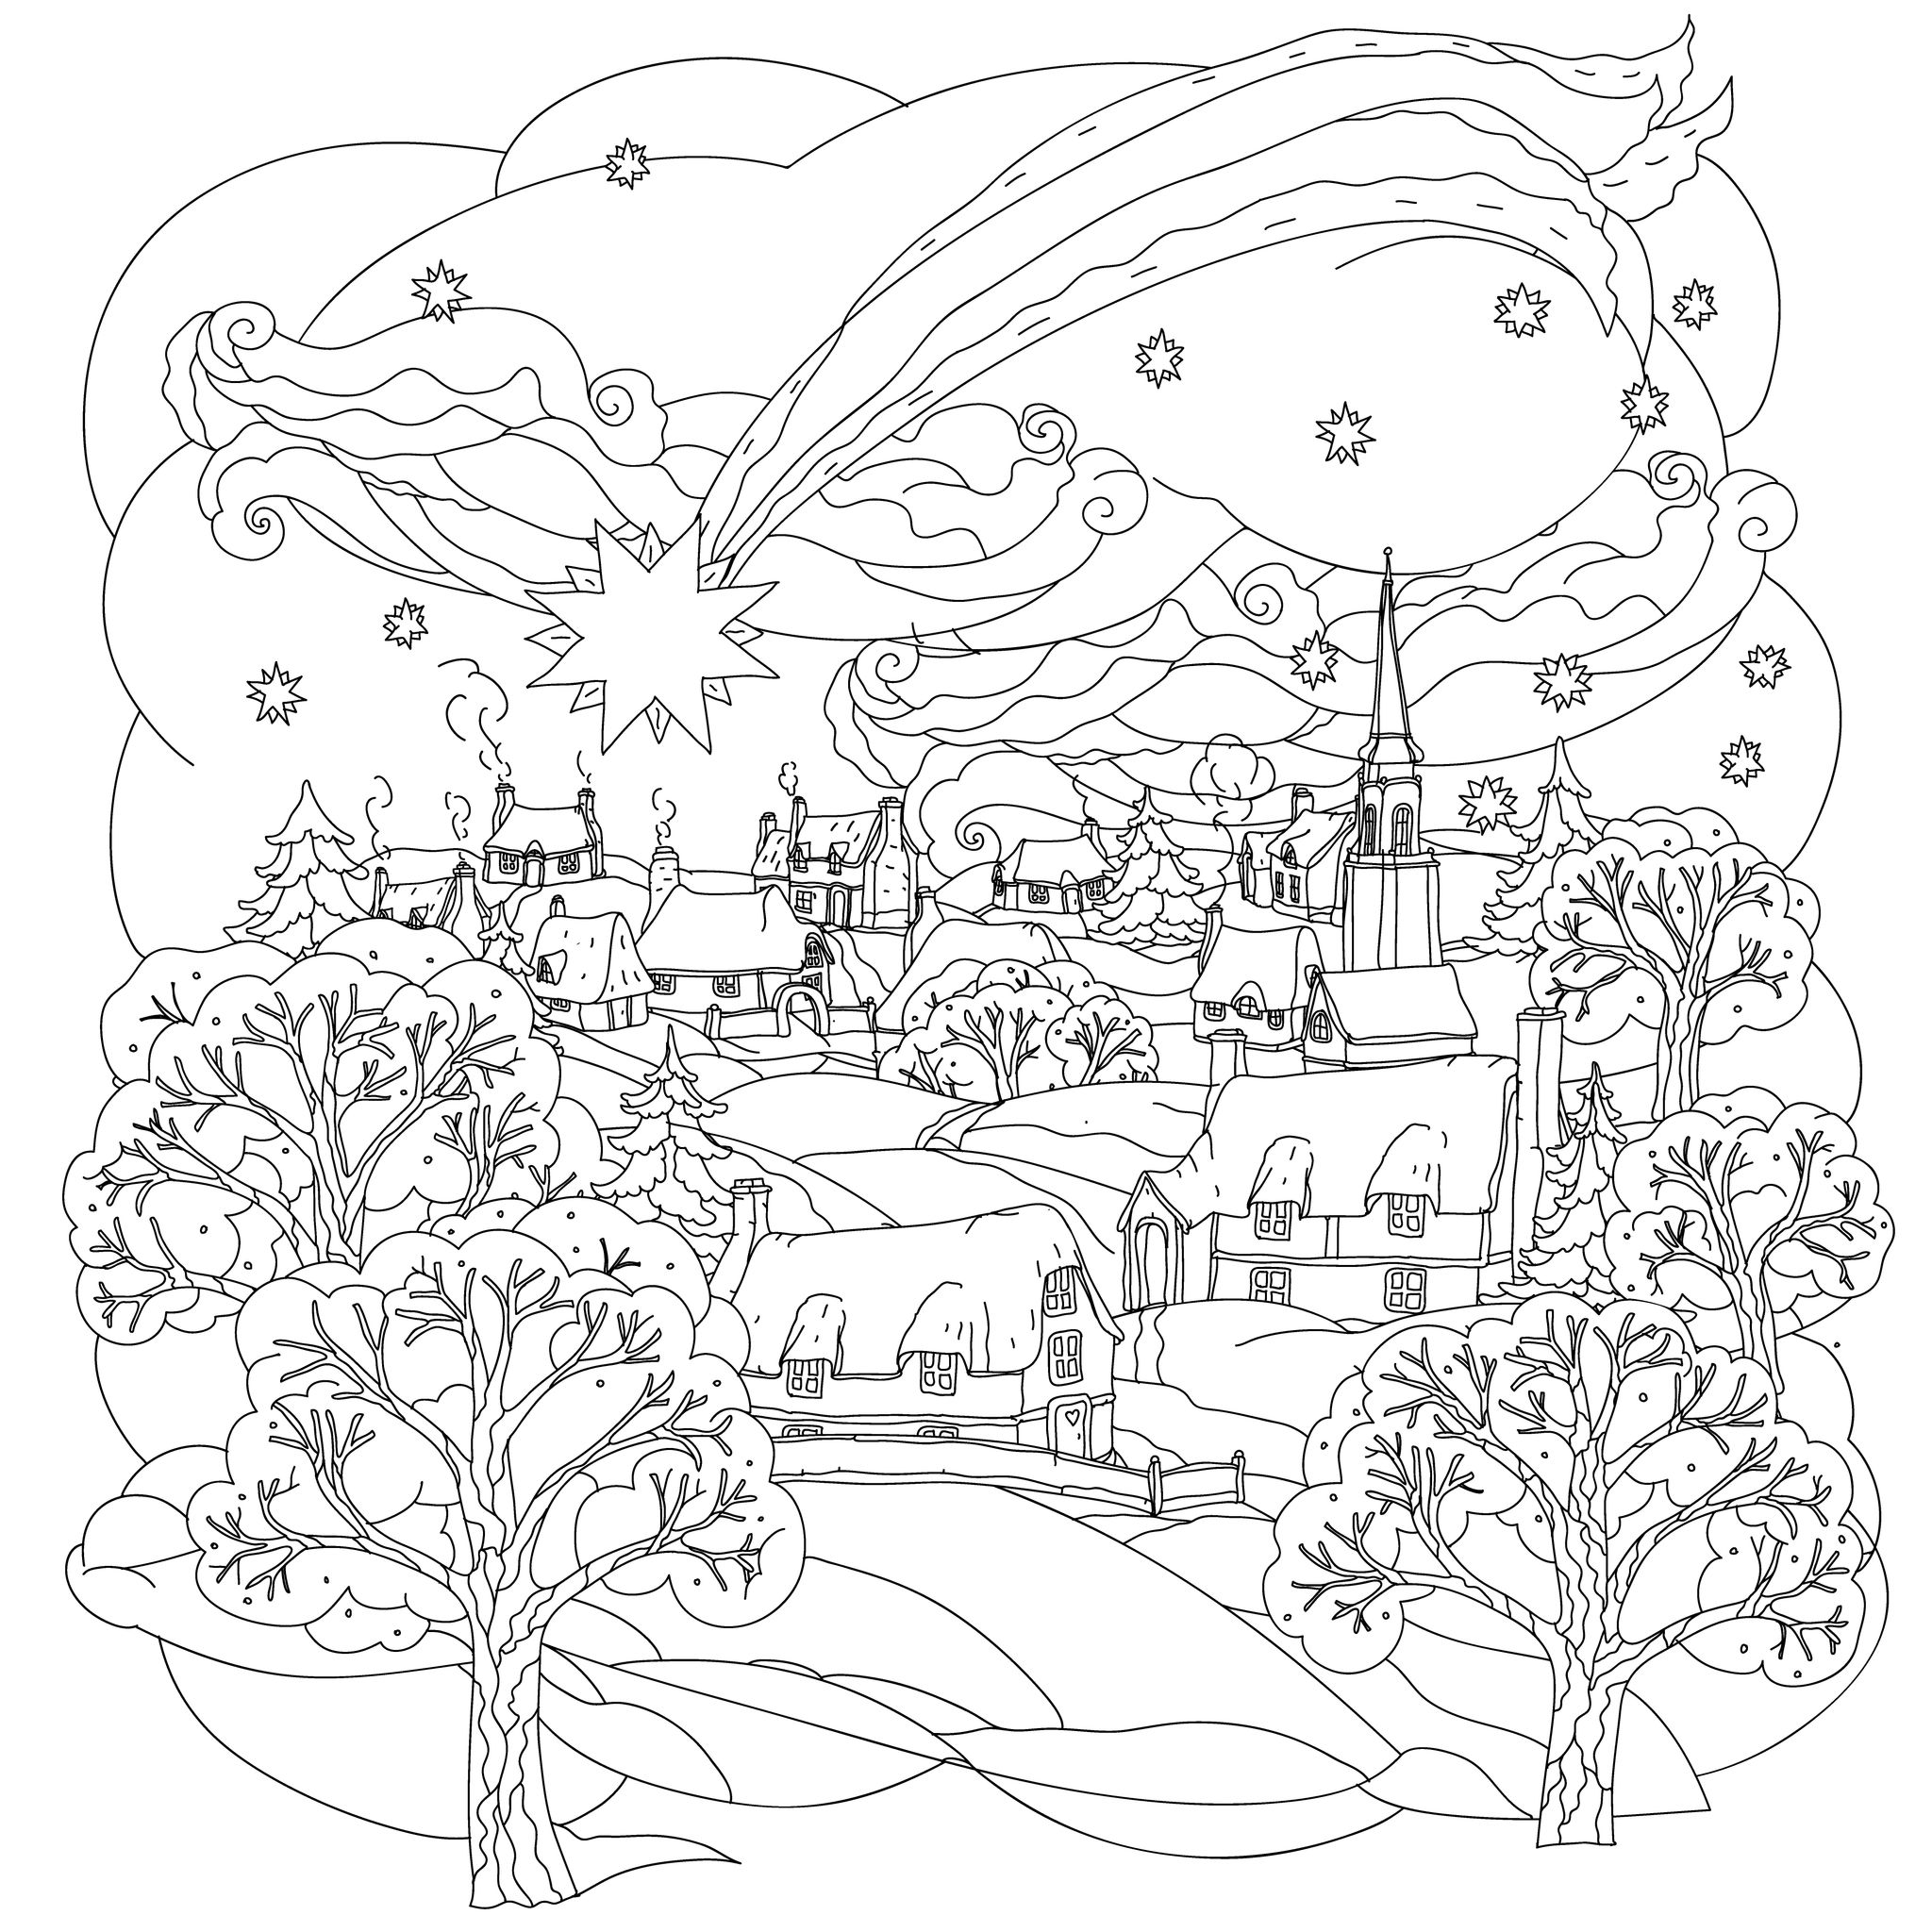 Noel village coloriages de no l coloriages enfants biboon - Coloriage village de noel ...